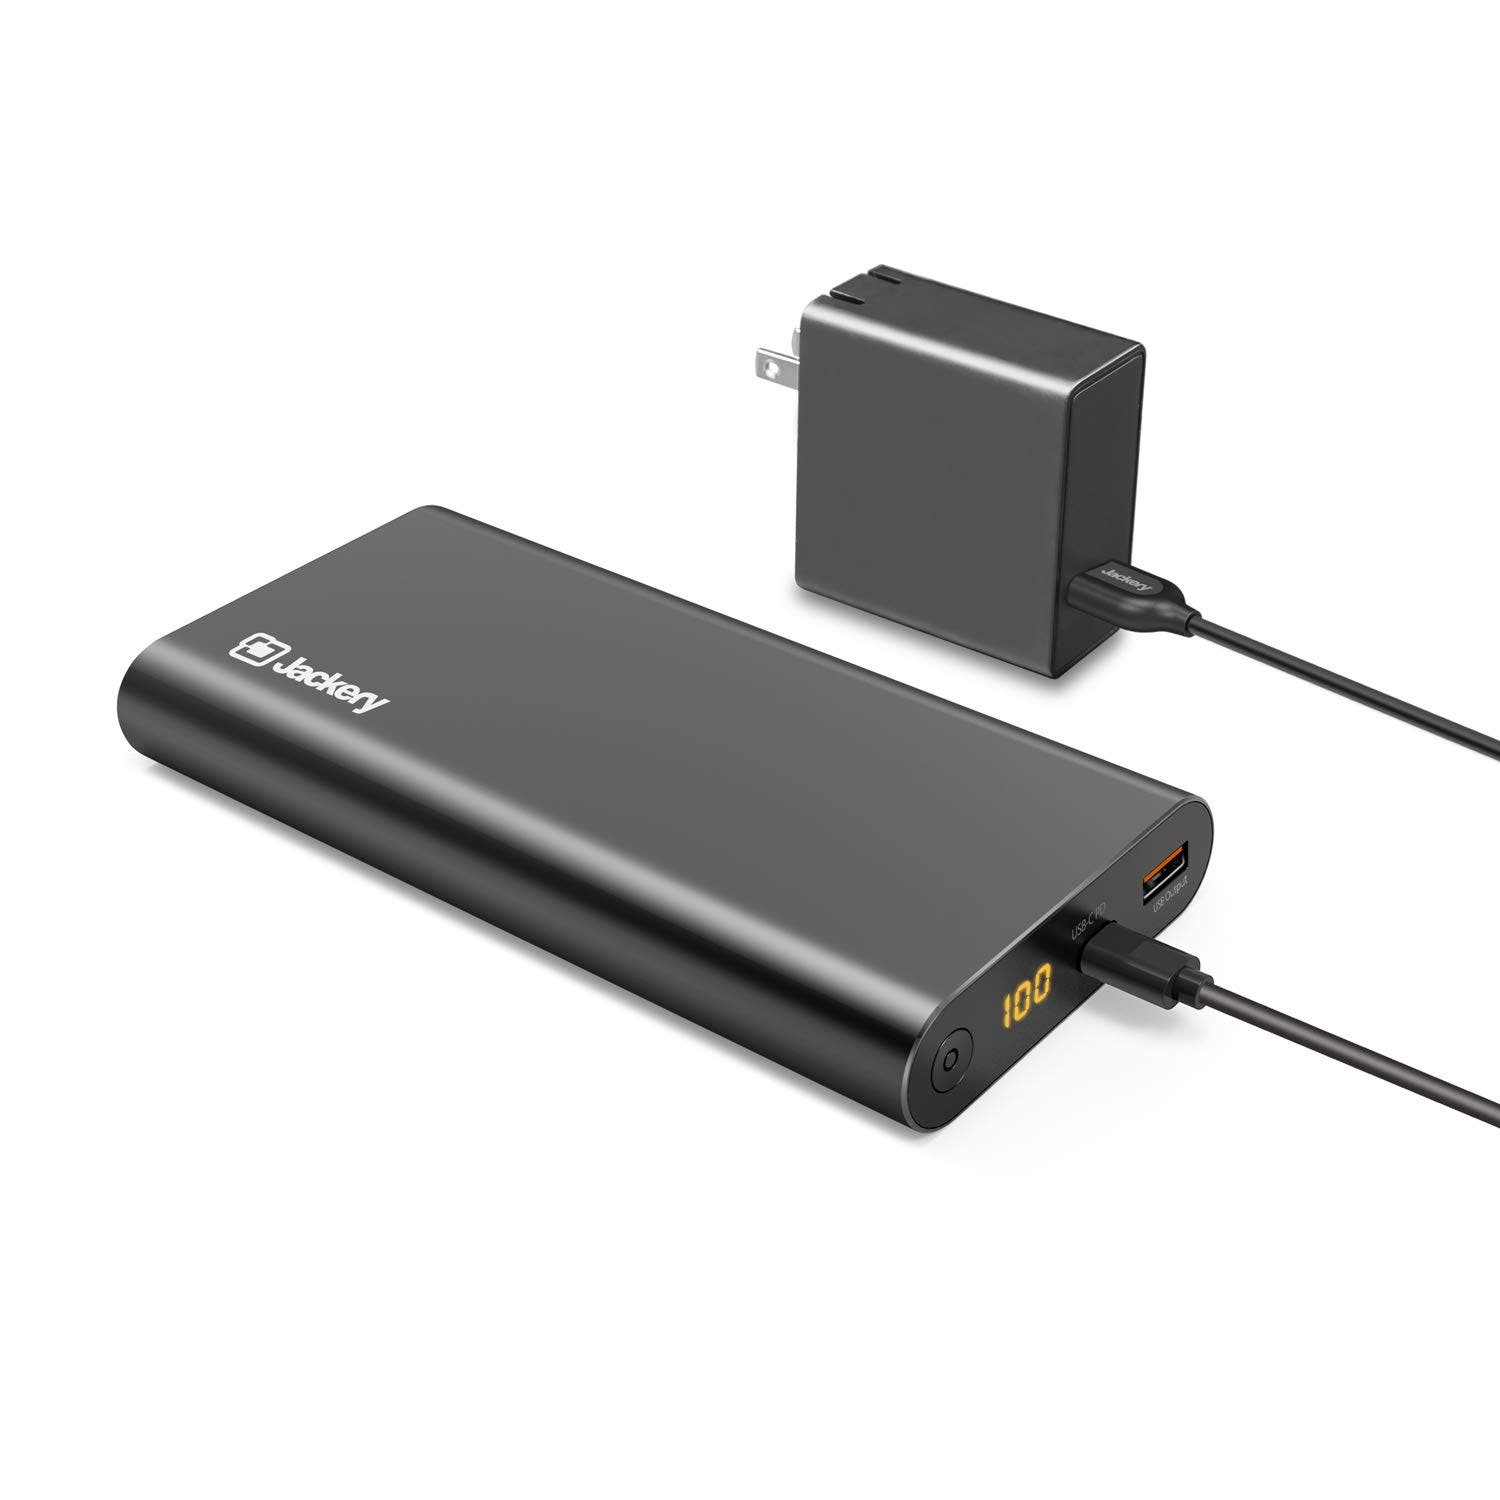 Jackery Portable Power Station Explorer 160 Specs